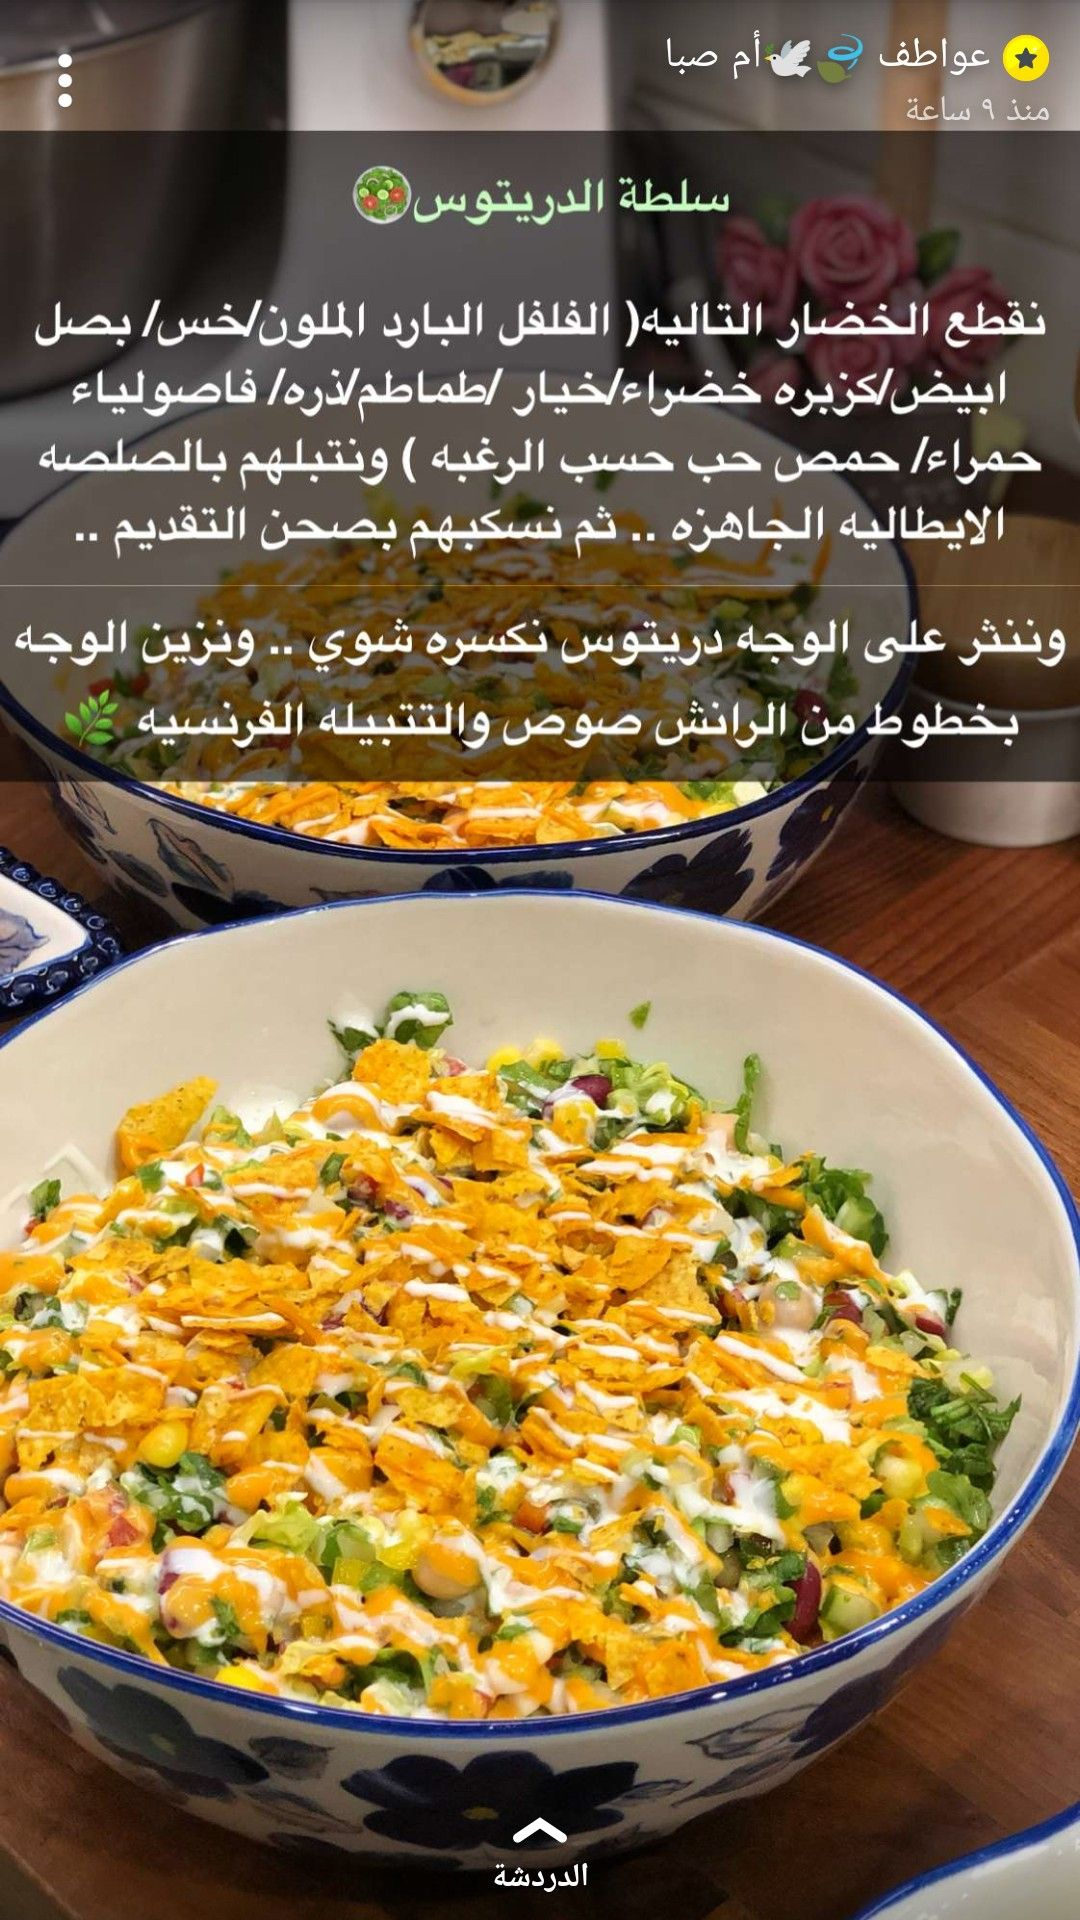 Pin By Raneem On عواطف ام صبا Cookout Food Food Dishes Chicken Dinner Recipes